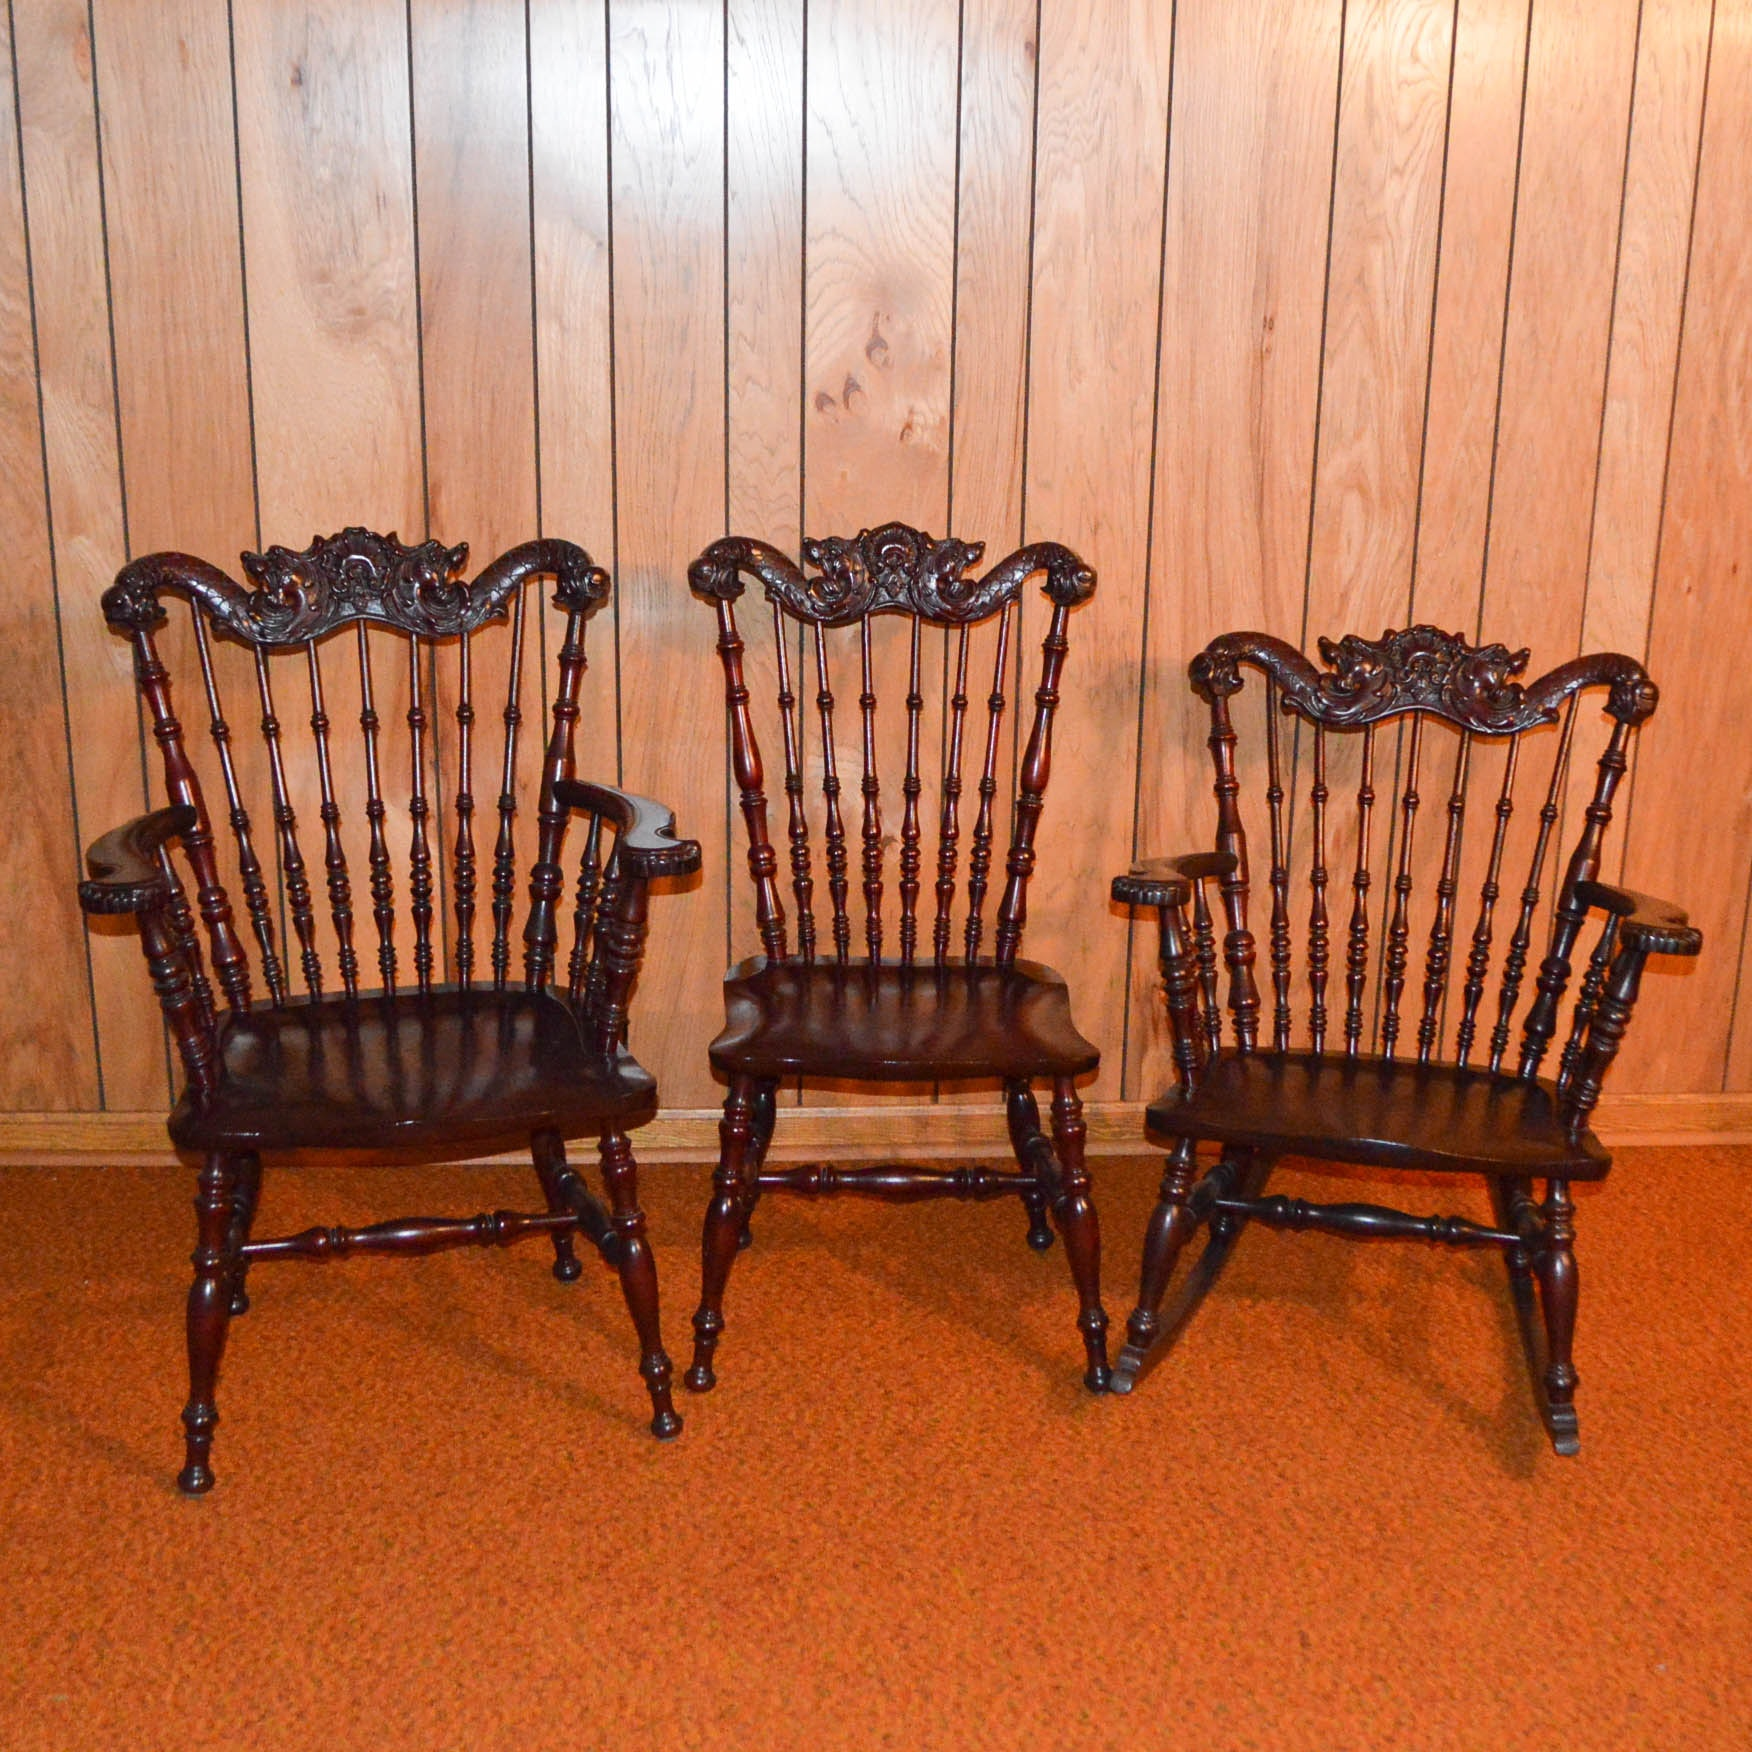 Colonial Revival Era Ornate Chairs And Rocker ...